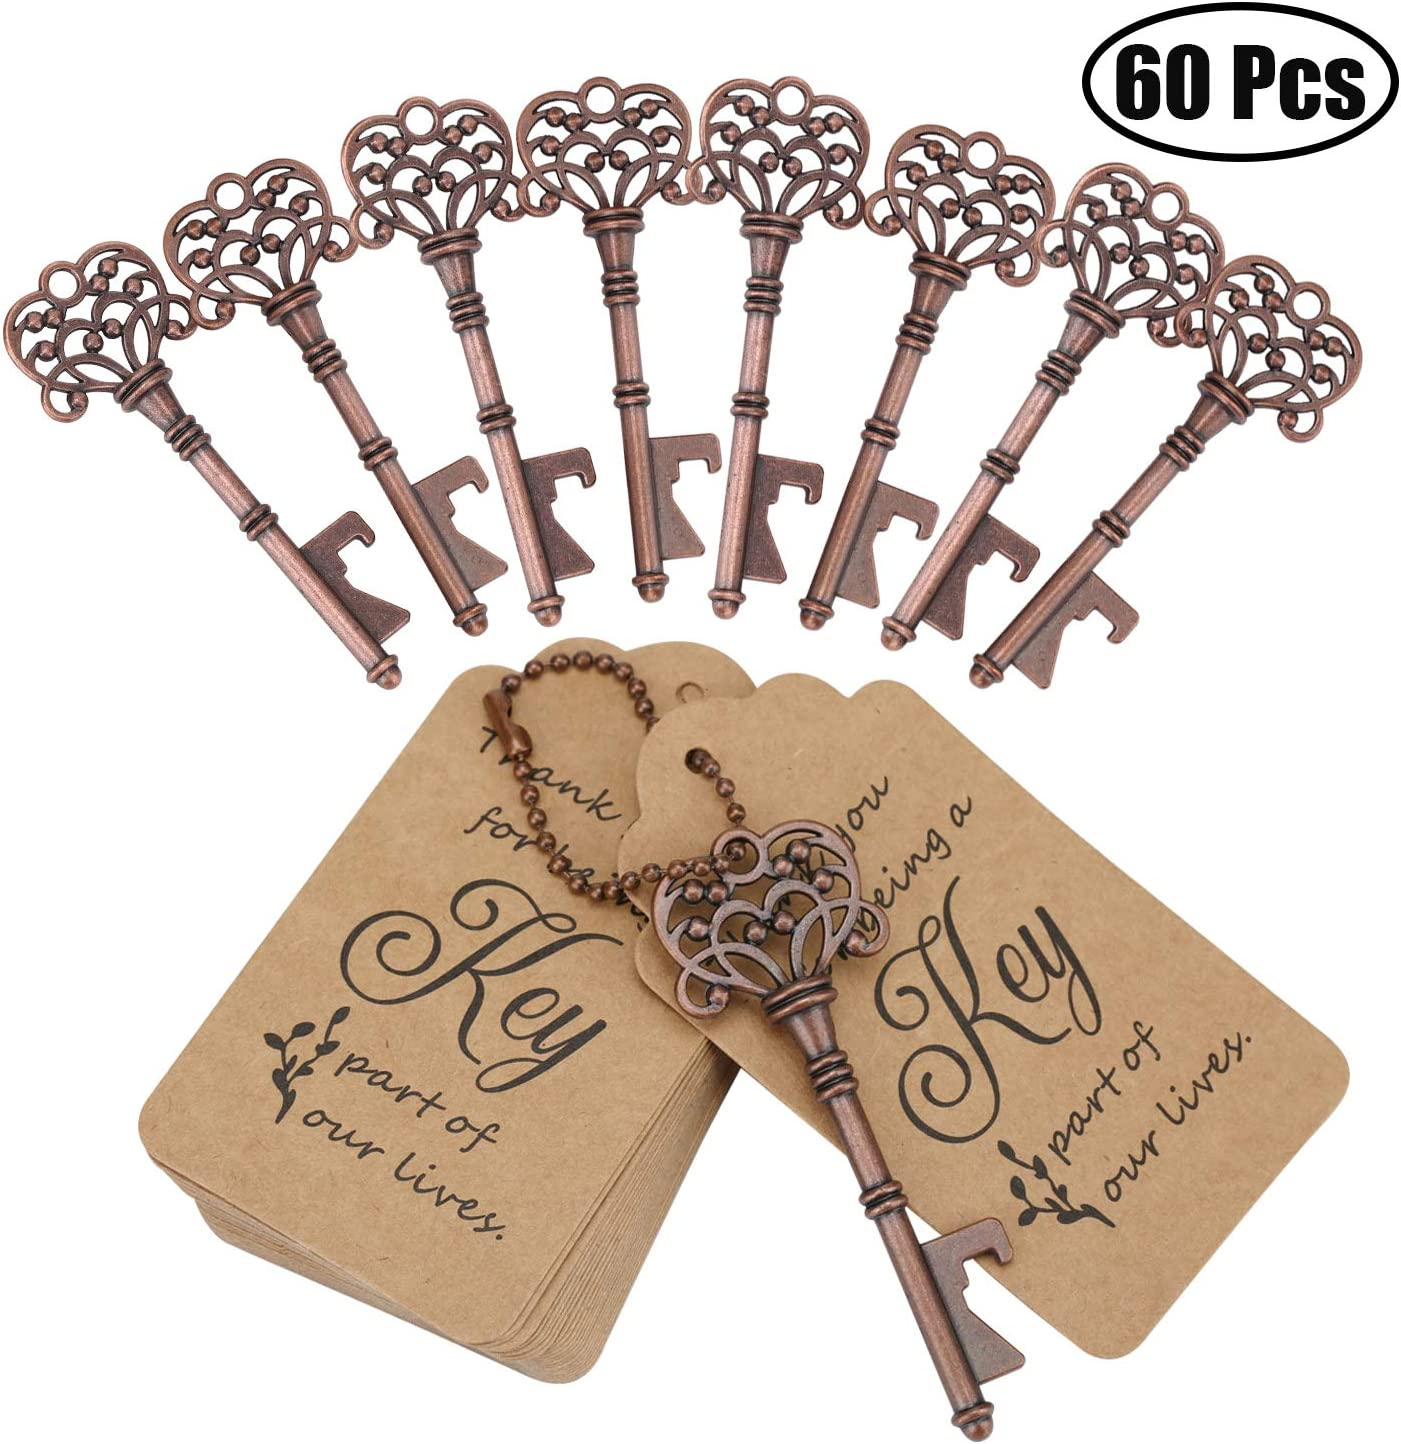 WODEGIFT 60 PCS Key Bottle Openers,Vintage Skeleton Key Bottle Opener with Escort Card Tag and Key Chains,Wedding Party Favor Souvenir Gift(Red Copper)